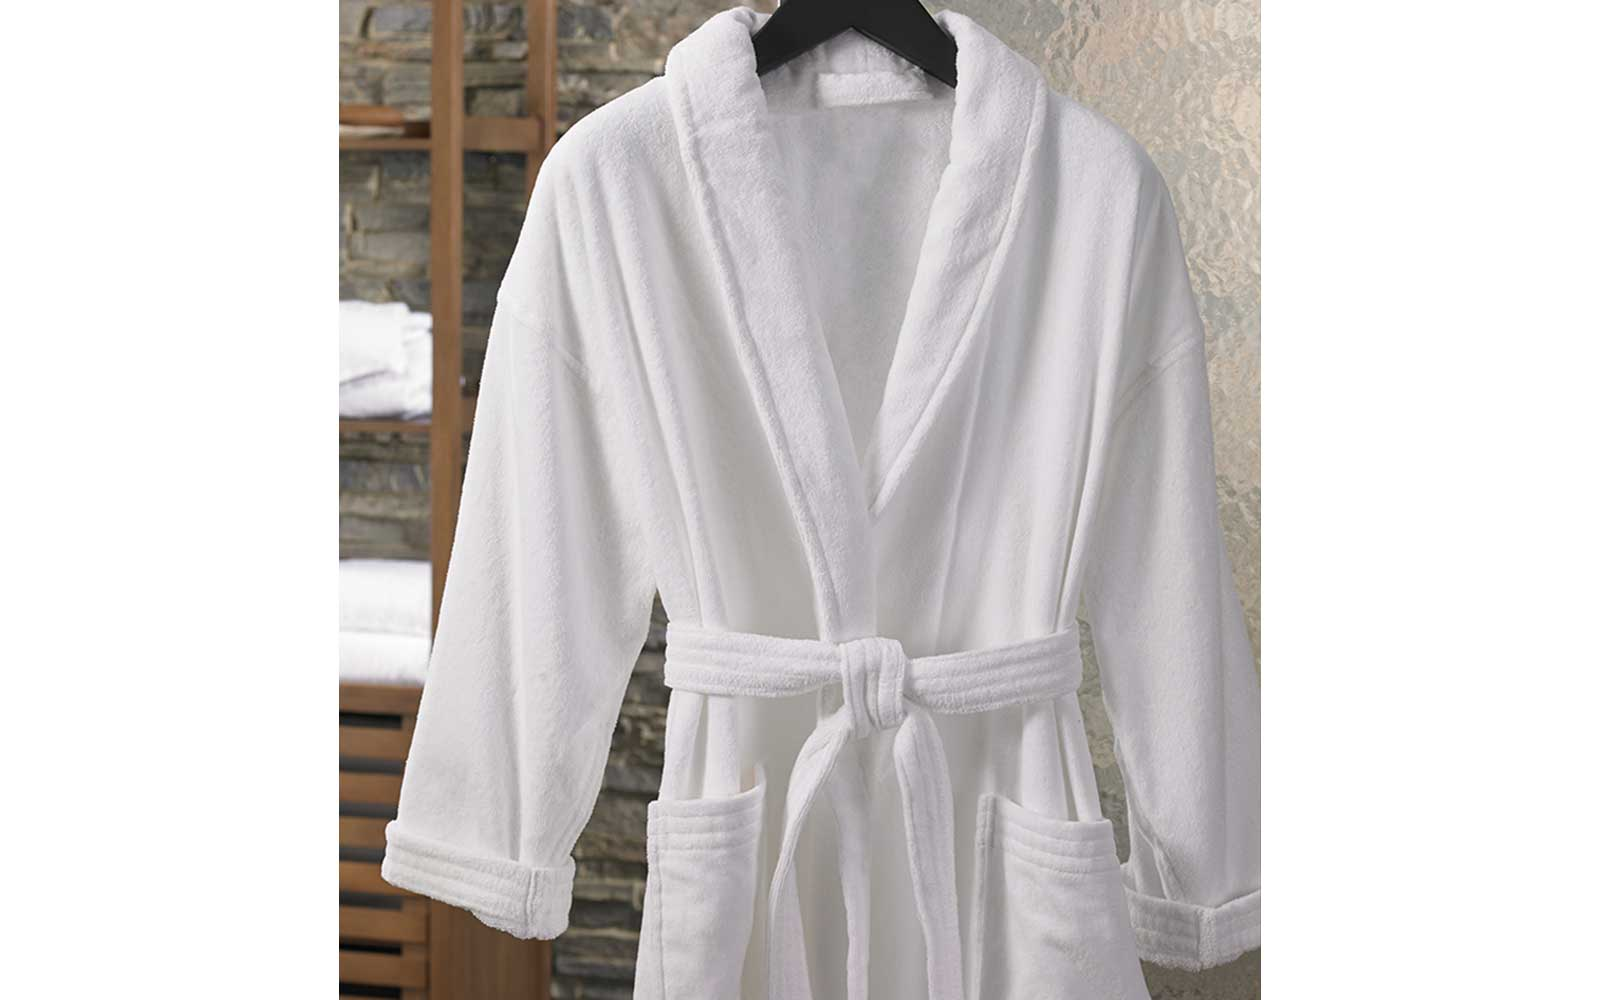 14 Luxury Hotel-quality Bathrobes You Can Buy Online  13a78ad53